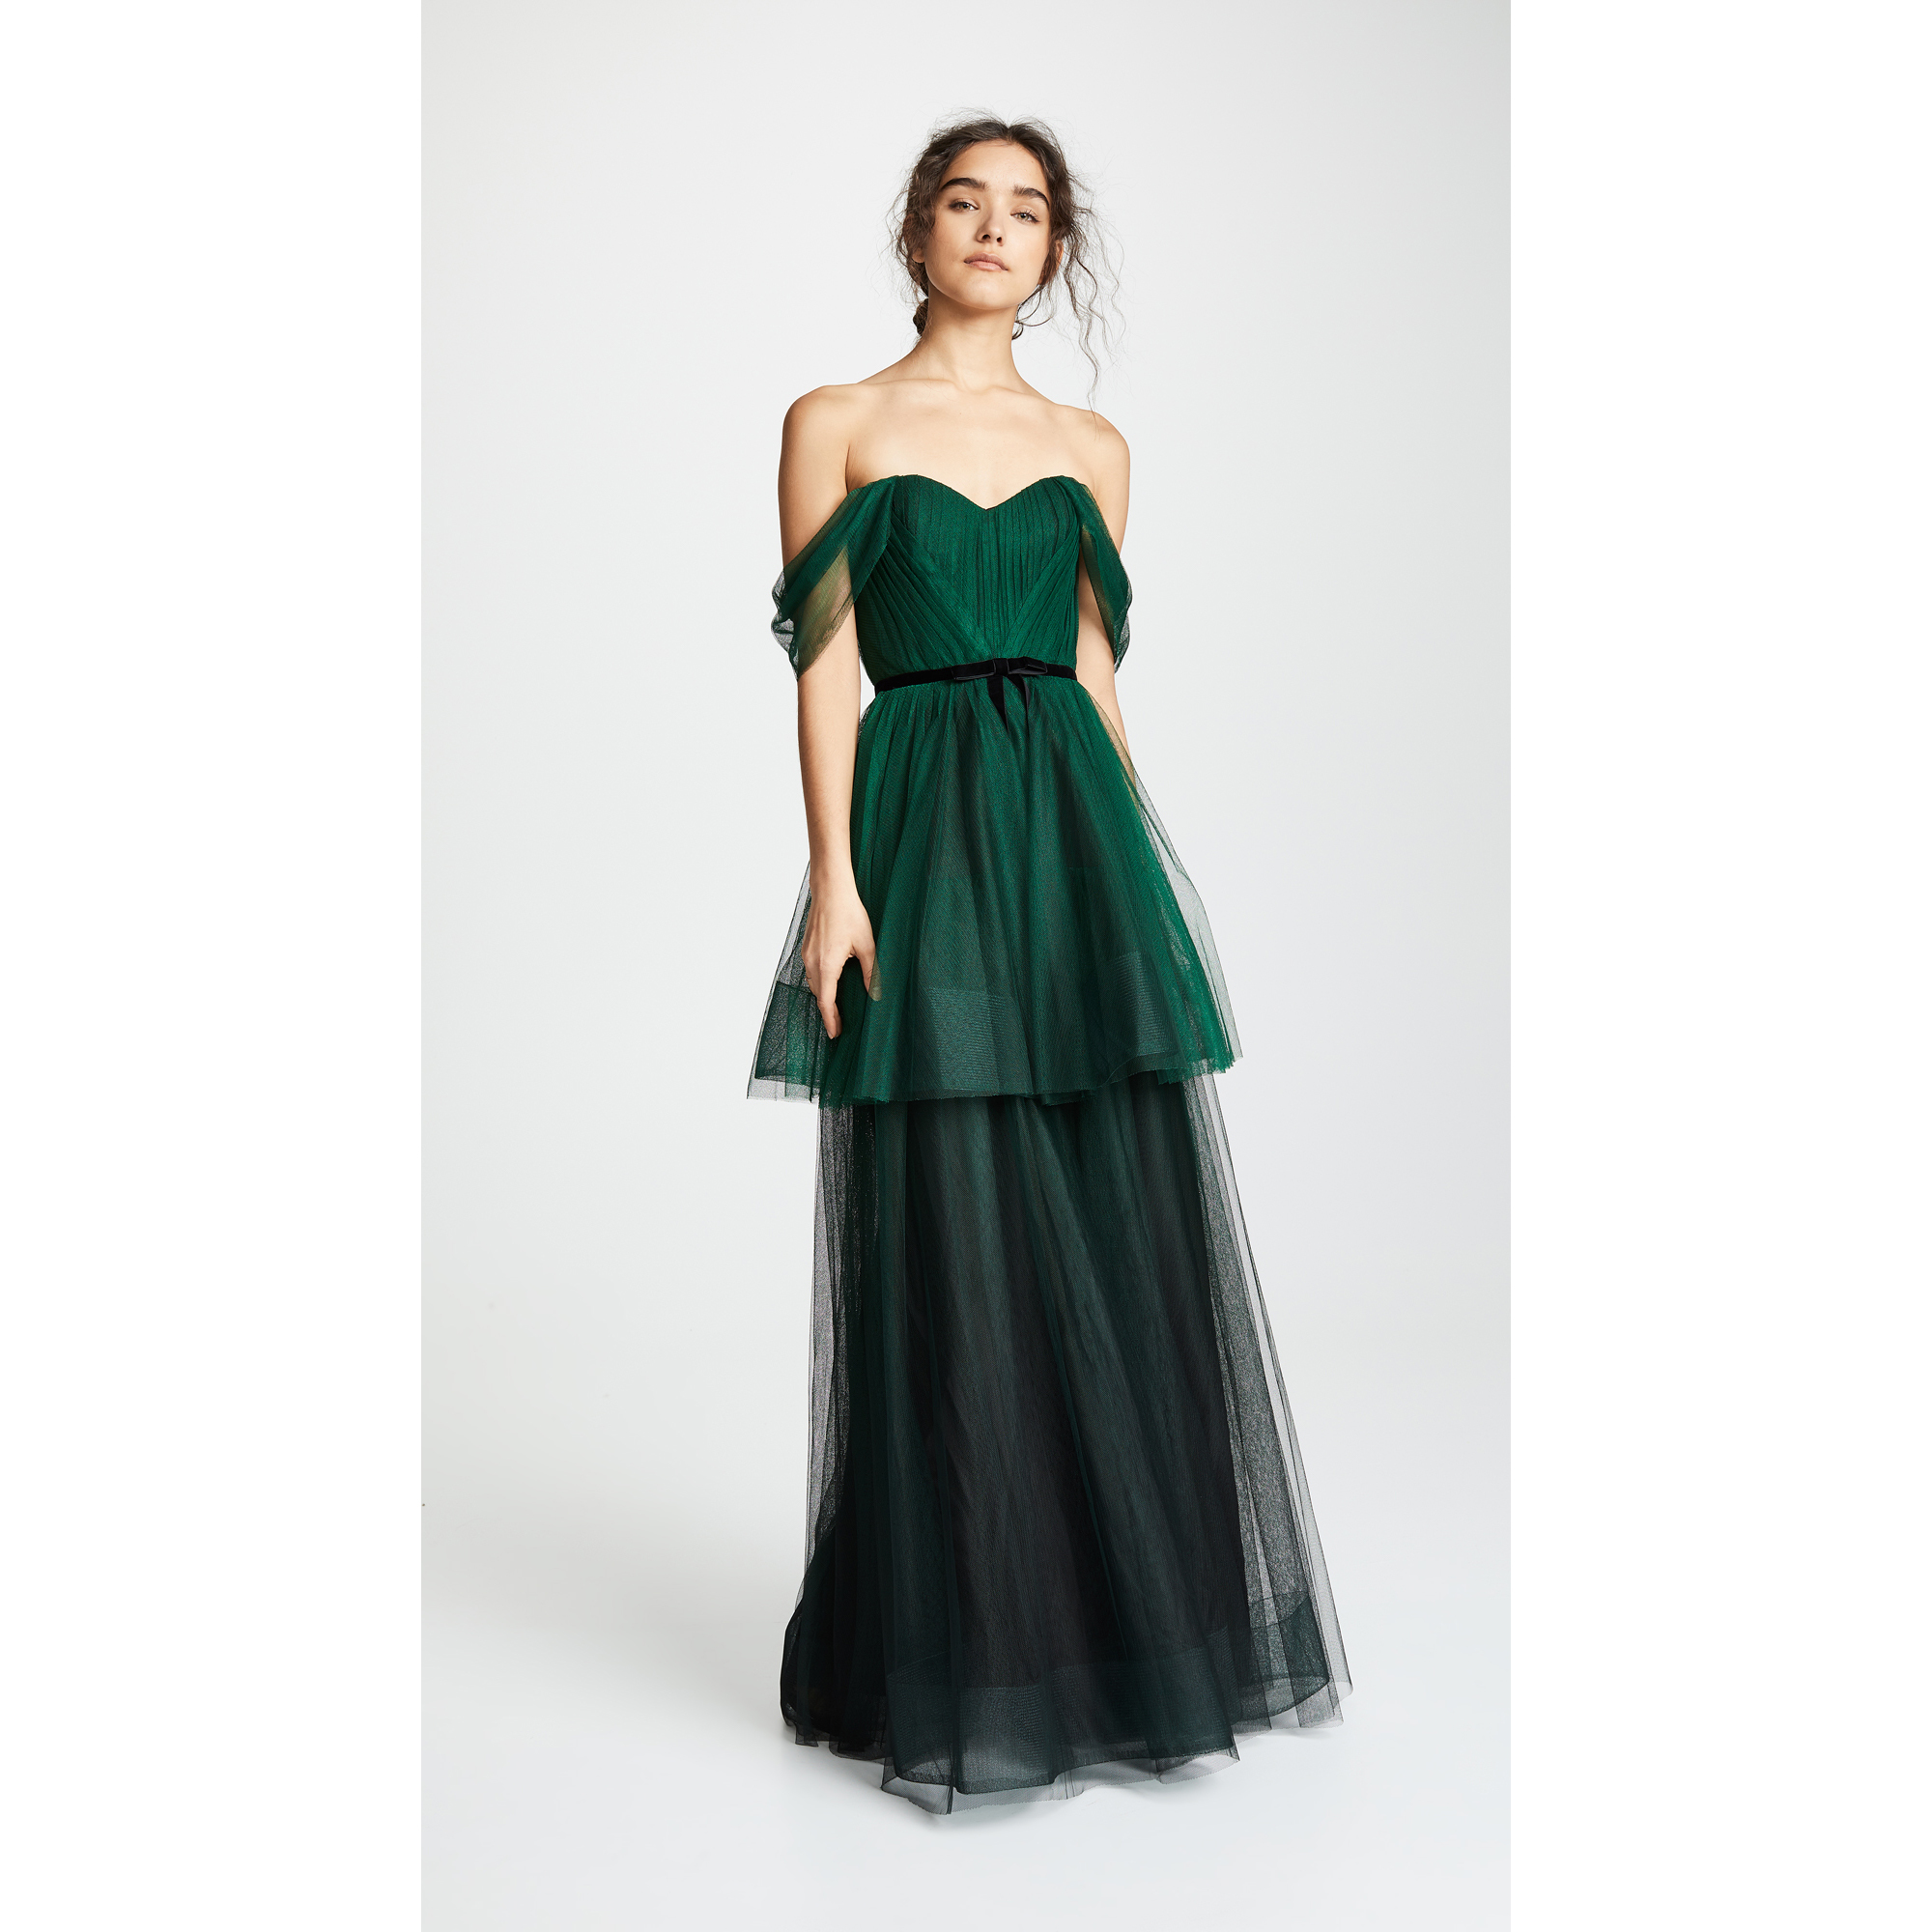 colorful wedding gowns Marchesa Notte Ombre Tulle Tiered Gown in Emerald green shopbop photo